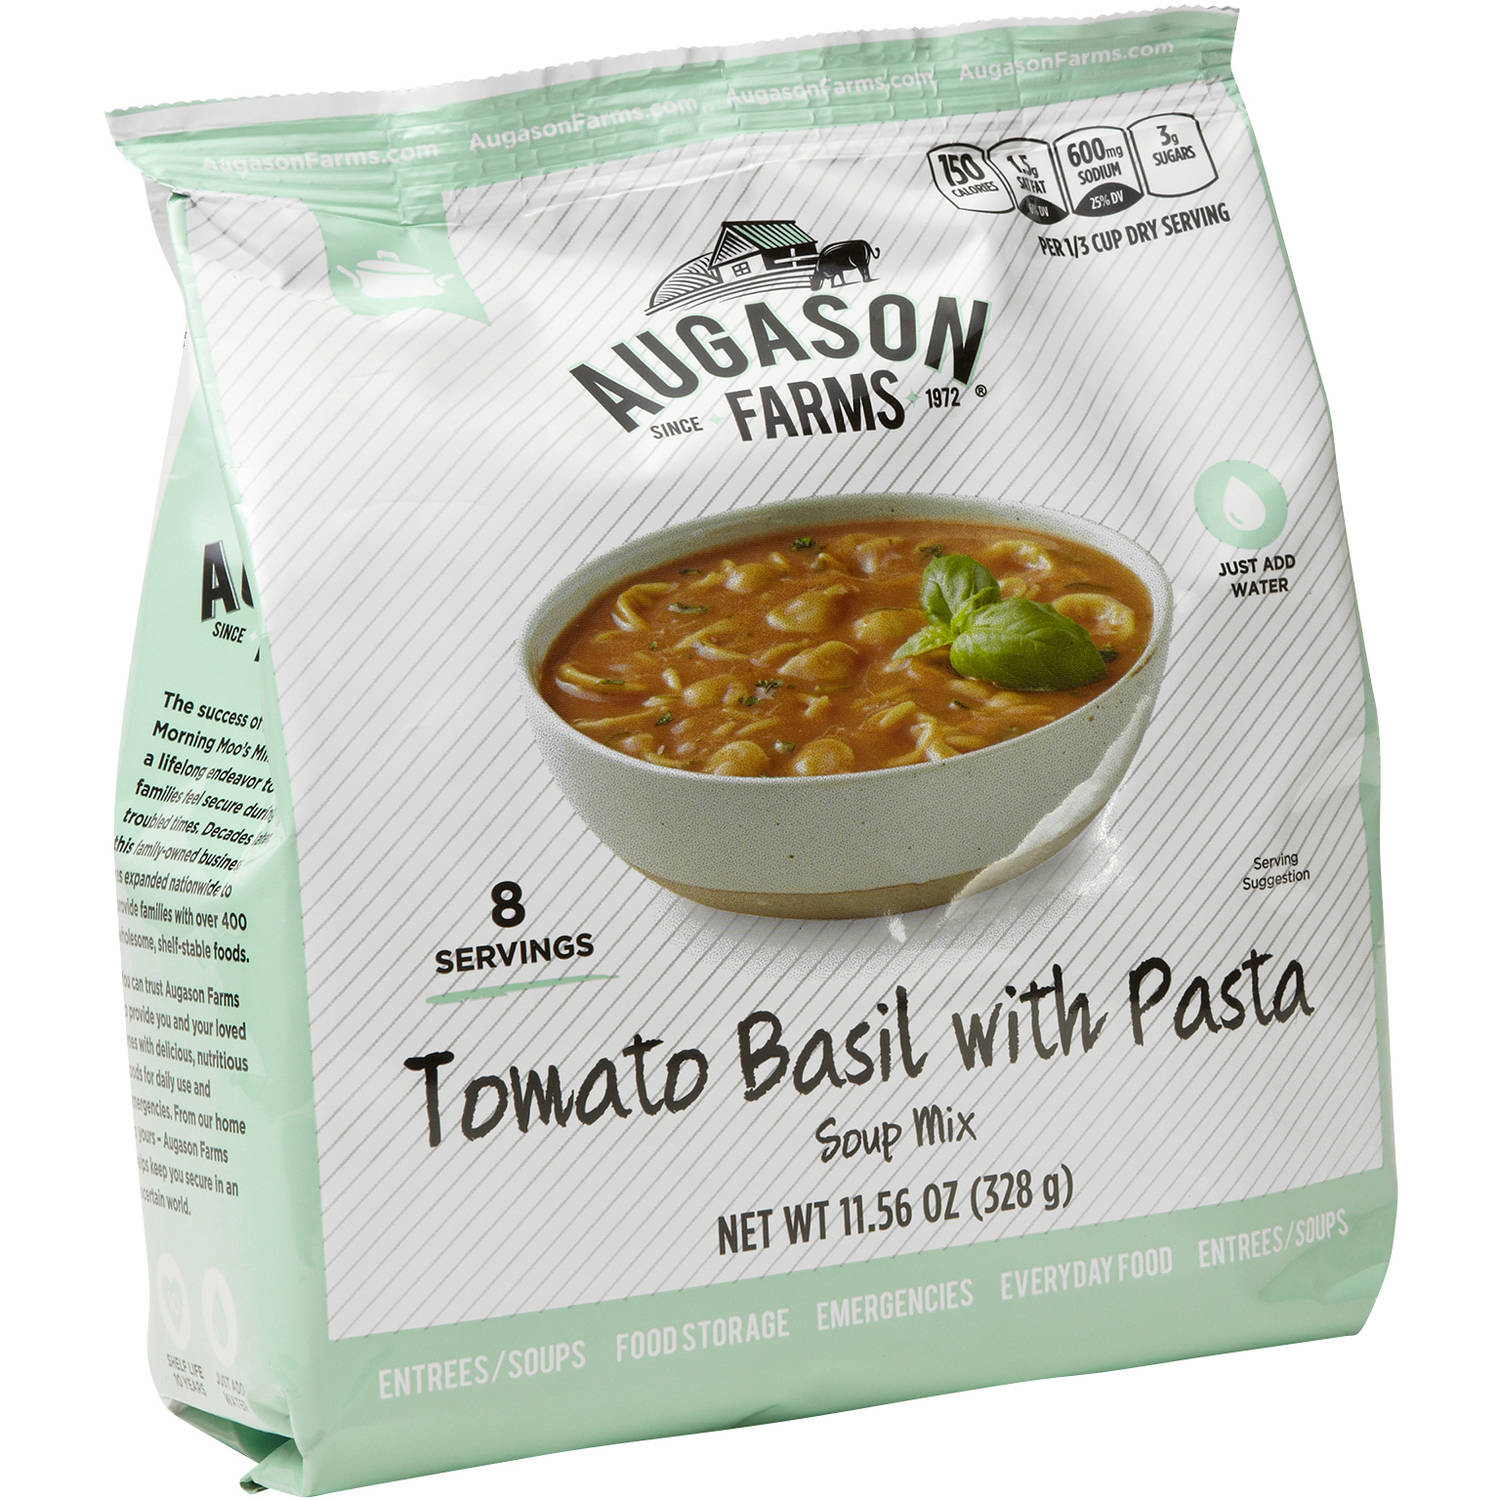 Augason Farms Tomato Basil with Pasta Soup Mix, 11.56 oz